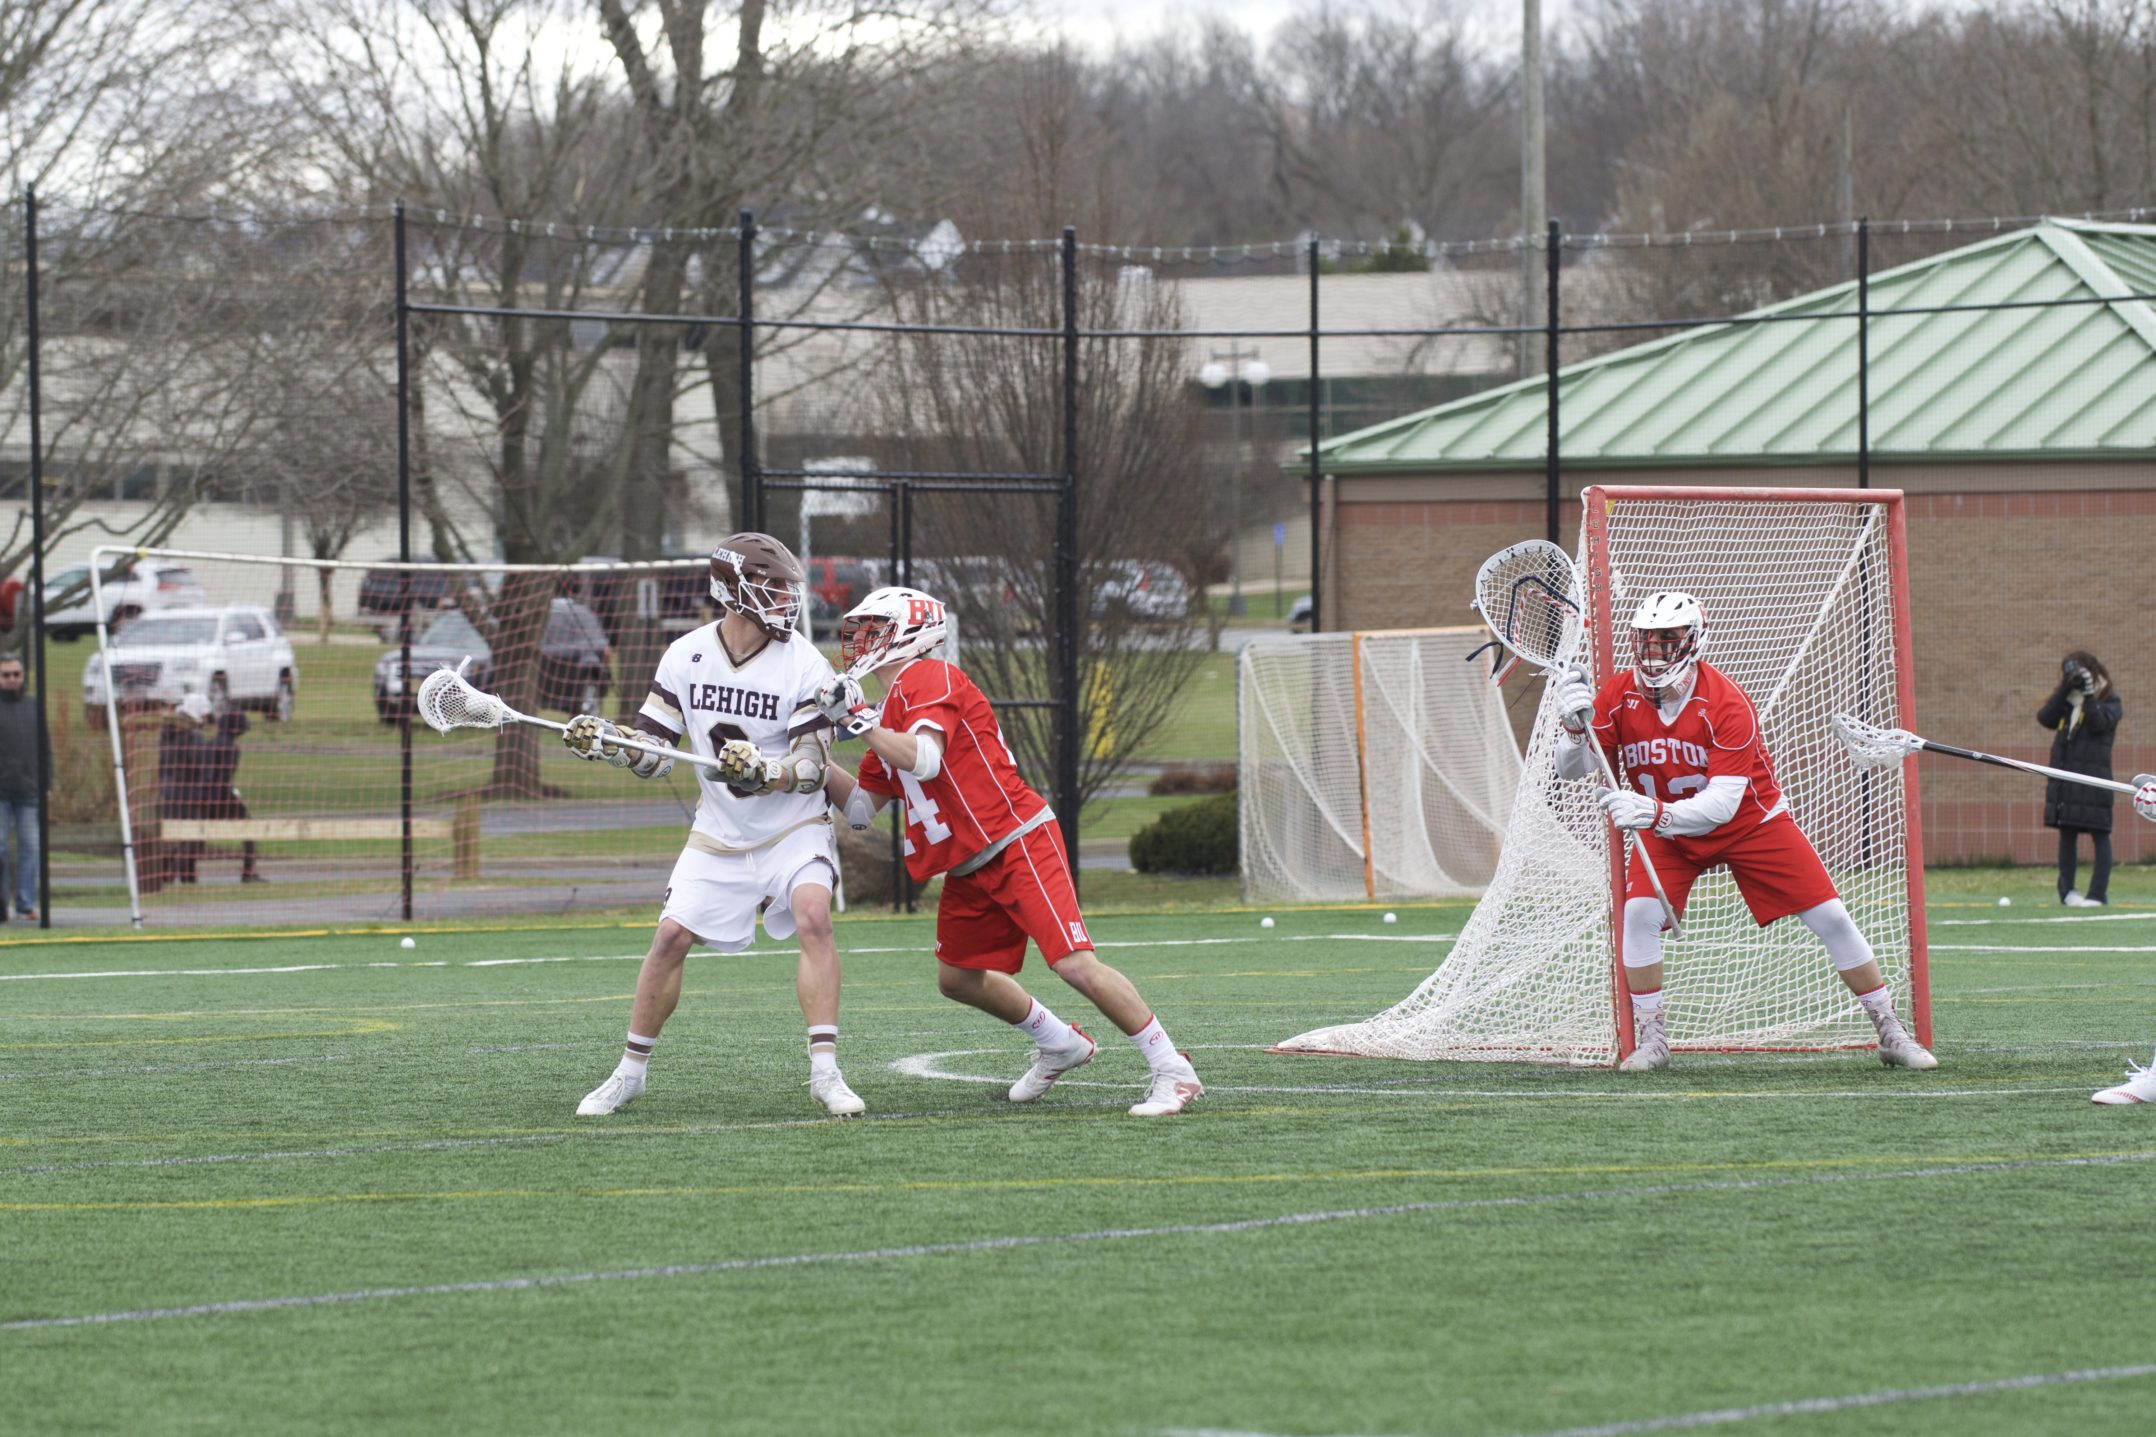 Lehigh sophomore attacker Mikey Fitzpatrick craddles the ball around the crease while being defended by Boston University freshman defender Chase Levesque during the men's lacrosse game versus Boston University on Saturday, April 1, 2017, at the Ulrich Sports Complex. Fitzpatrick had one shot on goal during the Mountain Hawks' 10-6 win. (Sarah Epstein/B&W Staff)